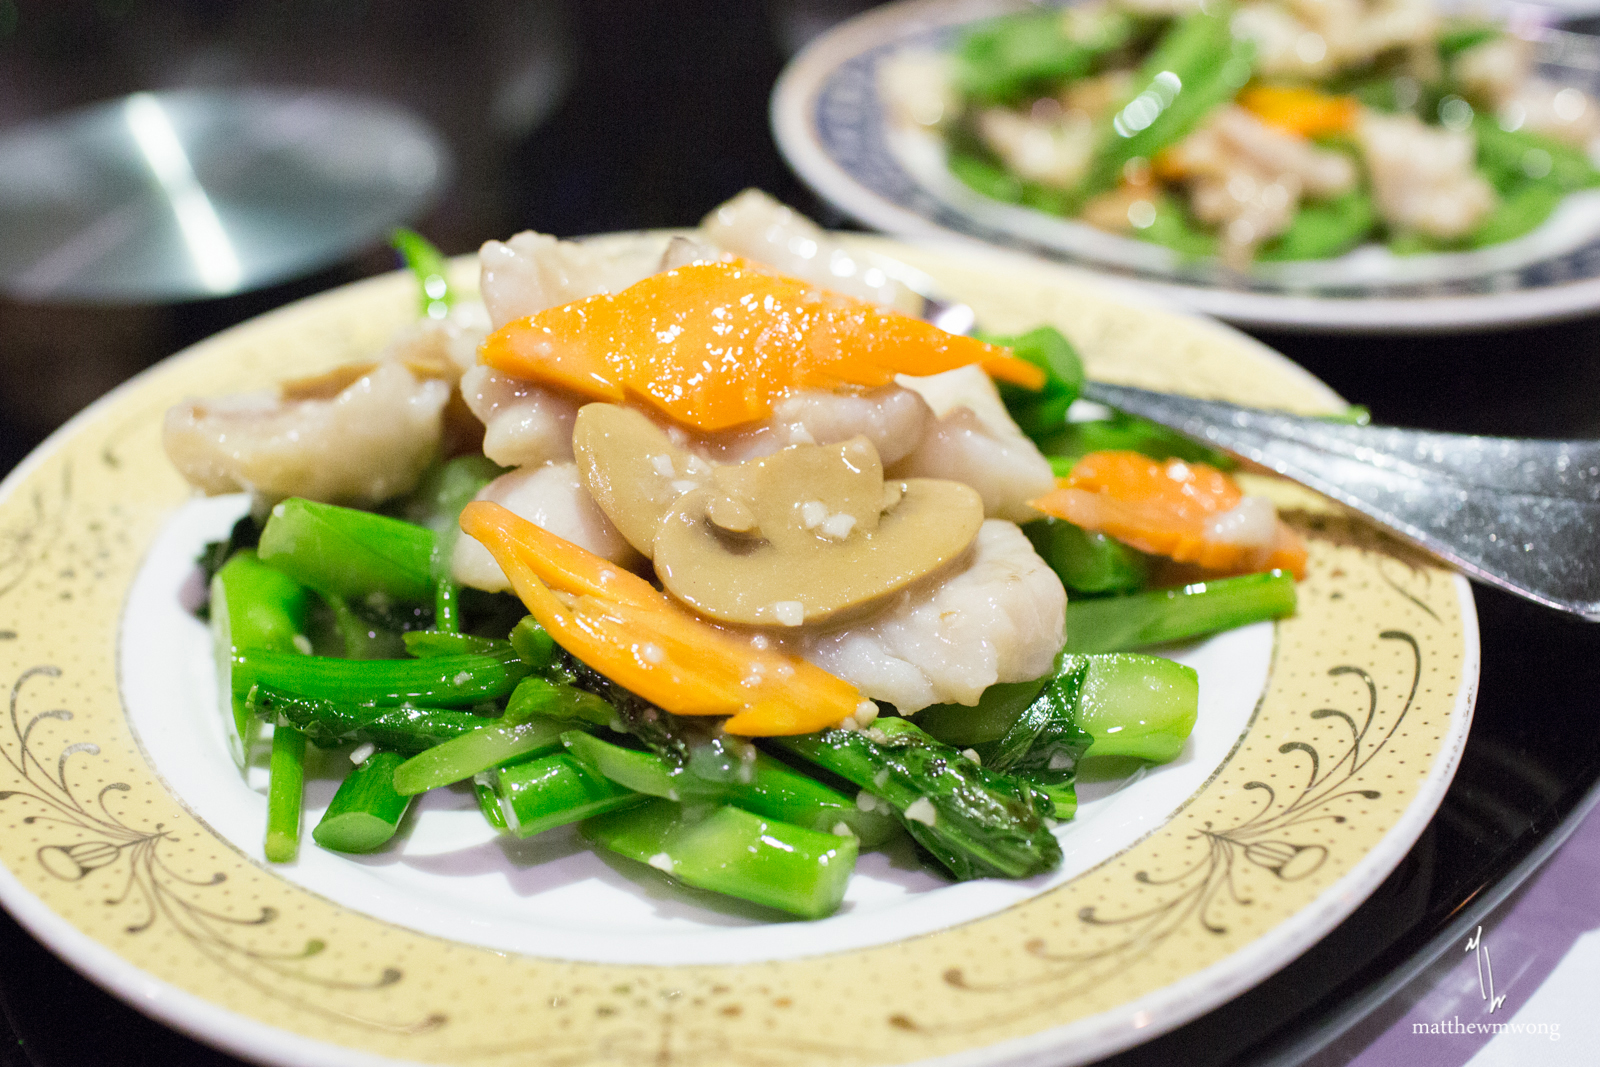 Slices of Rock Cod stir fried with mushrooms, carrots, and gailan